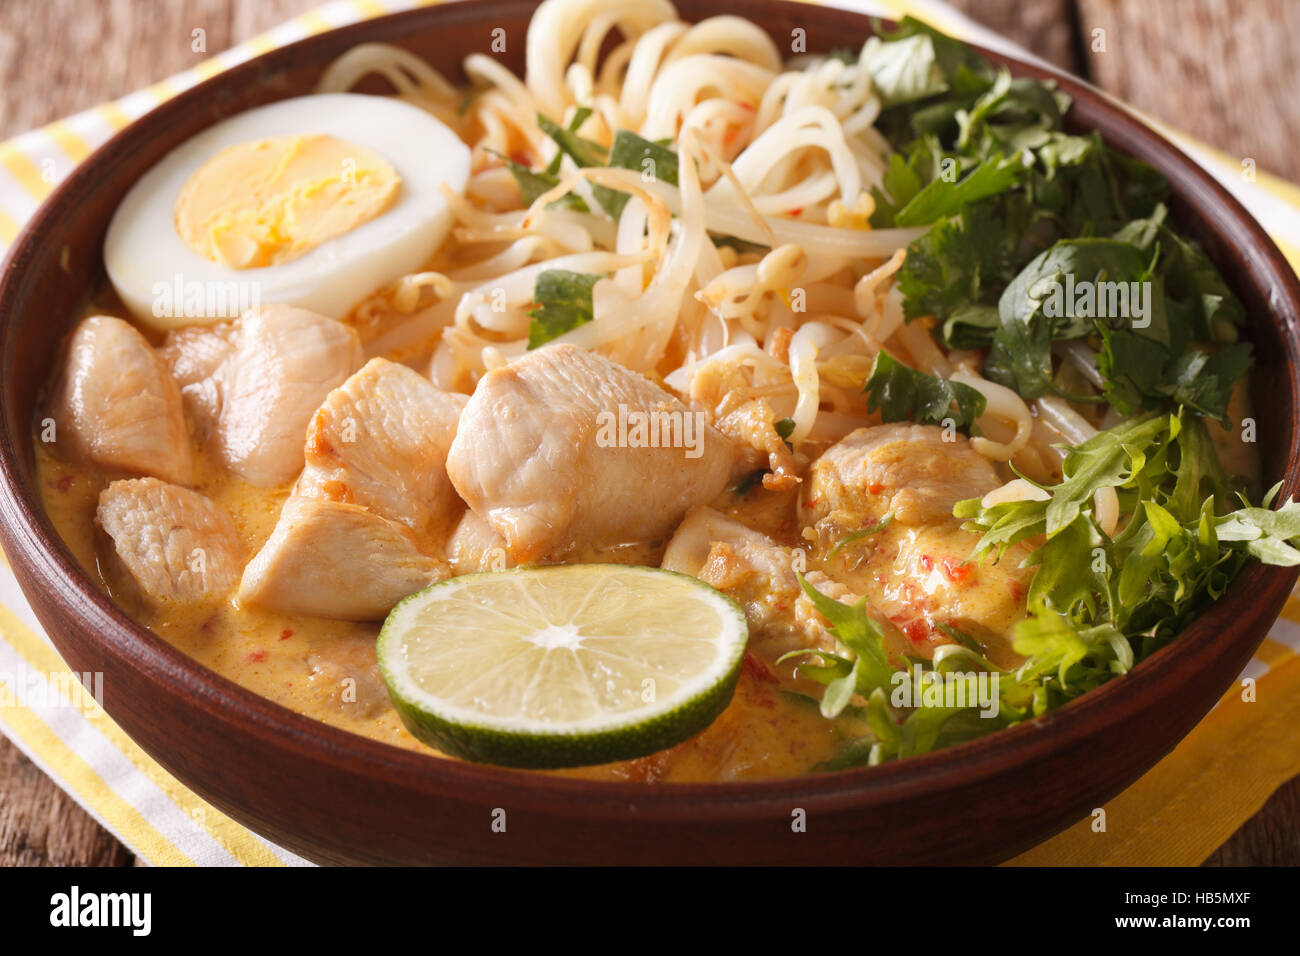 Laksa Soup With Chicken Egg Rice Noodles Bean Sprouts And Coriander In A Bowl Close Up On The Table Horizontal